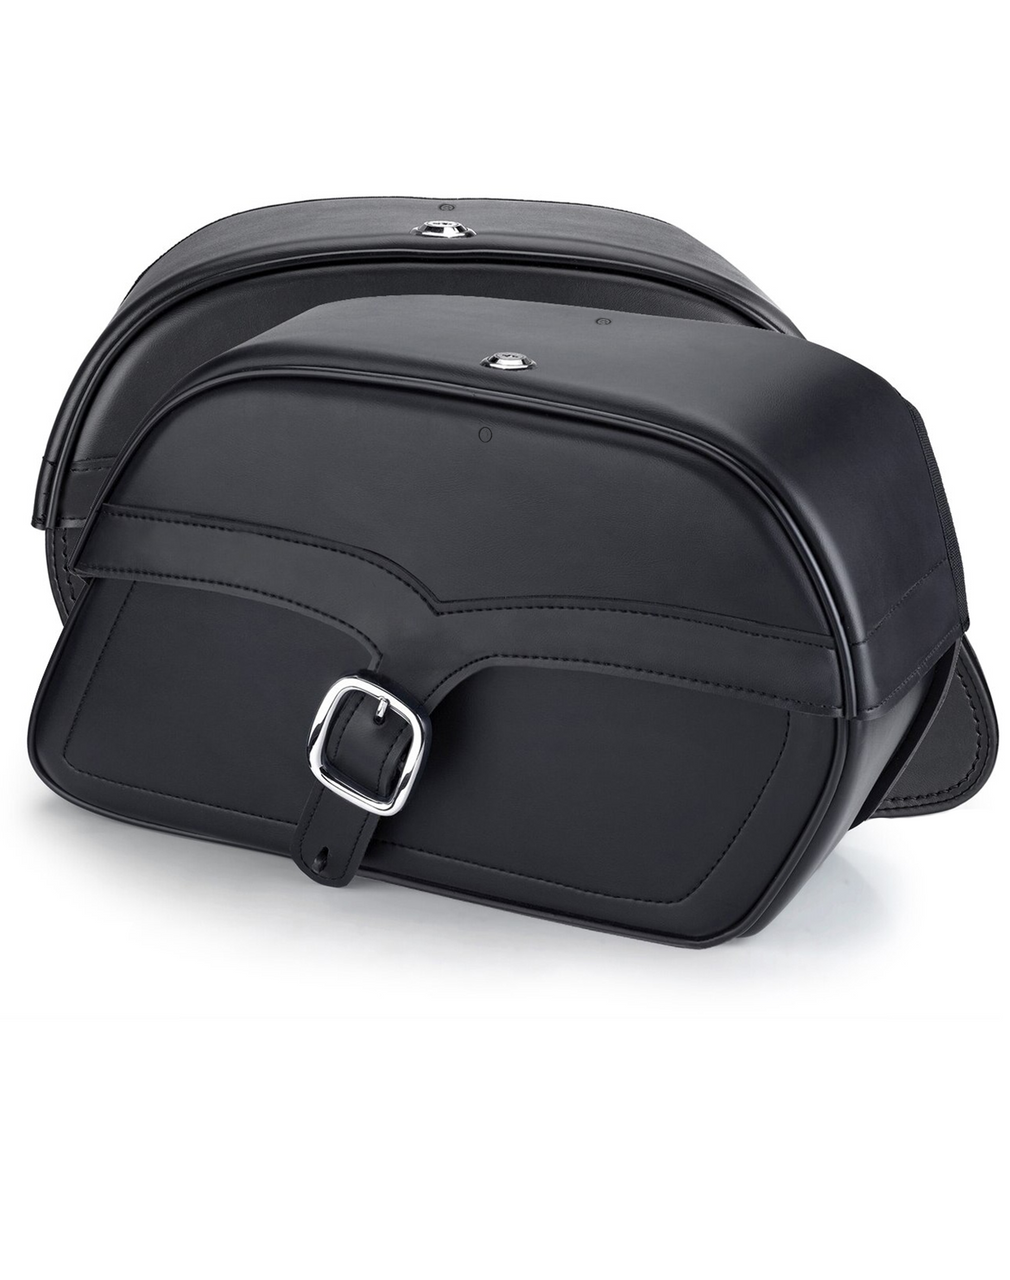 Victory Judge Charger Single Strap Large Motorcycle Saddlebags Both Bags View